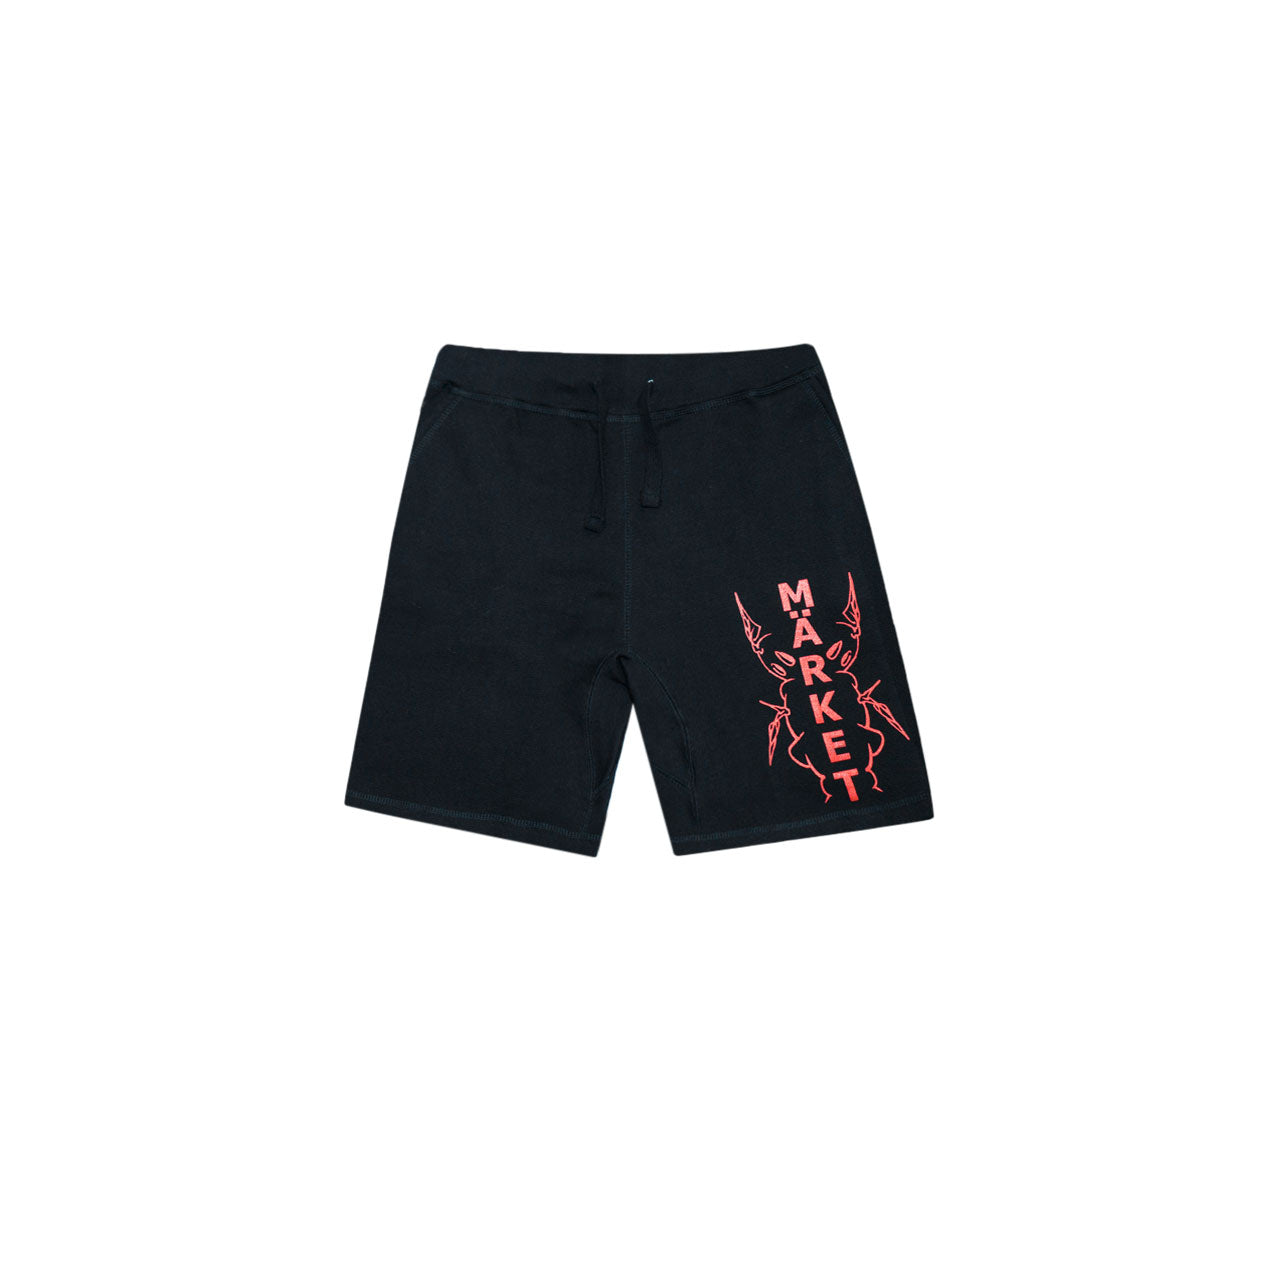 Märkət x Sky Welkin Sweat Short